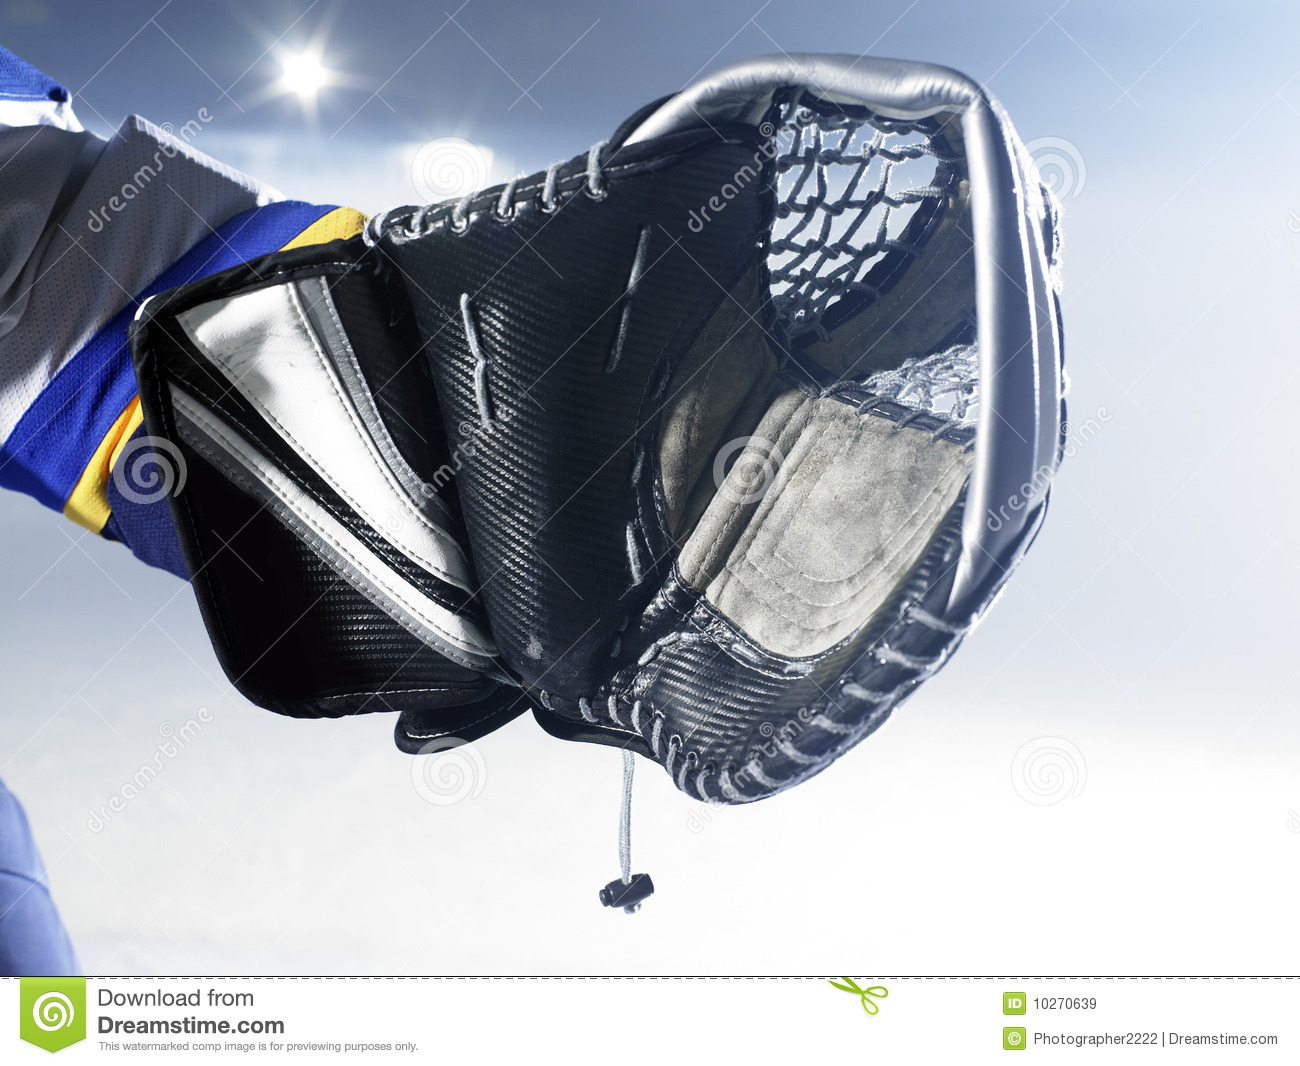 Download image ice hockey goalie gloves pc android iphone and ipad